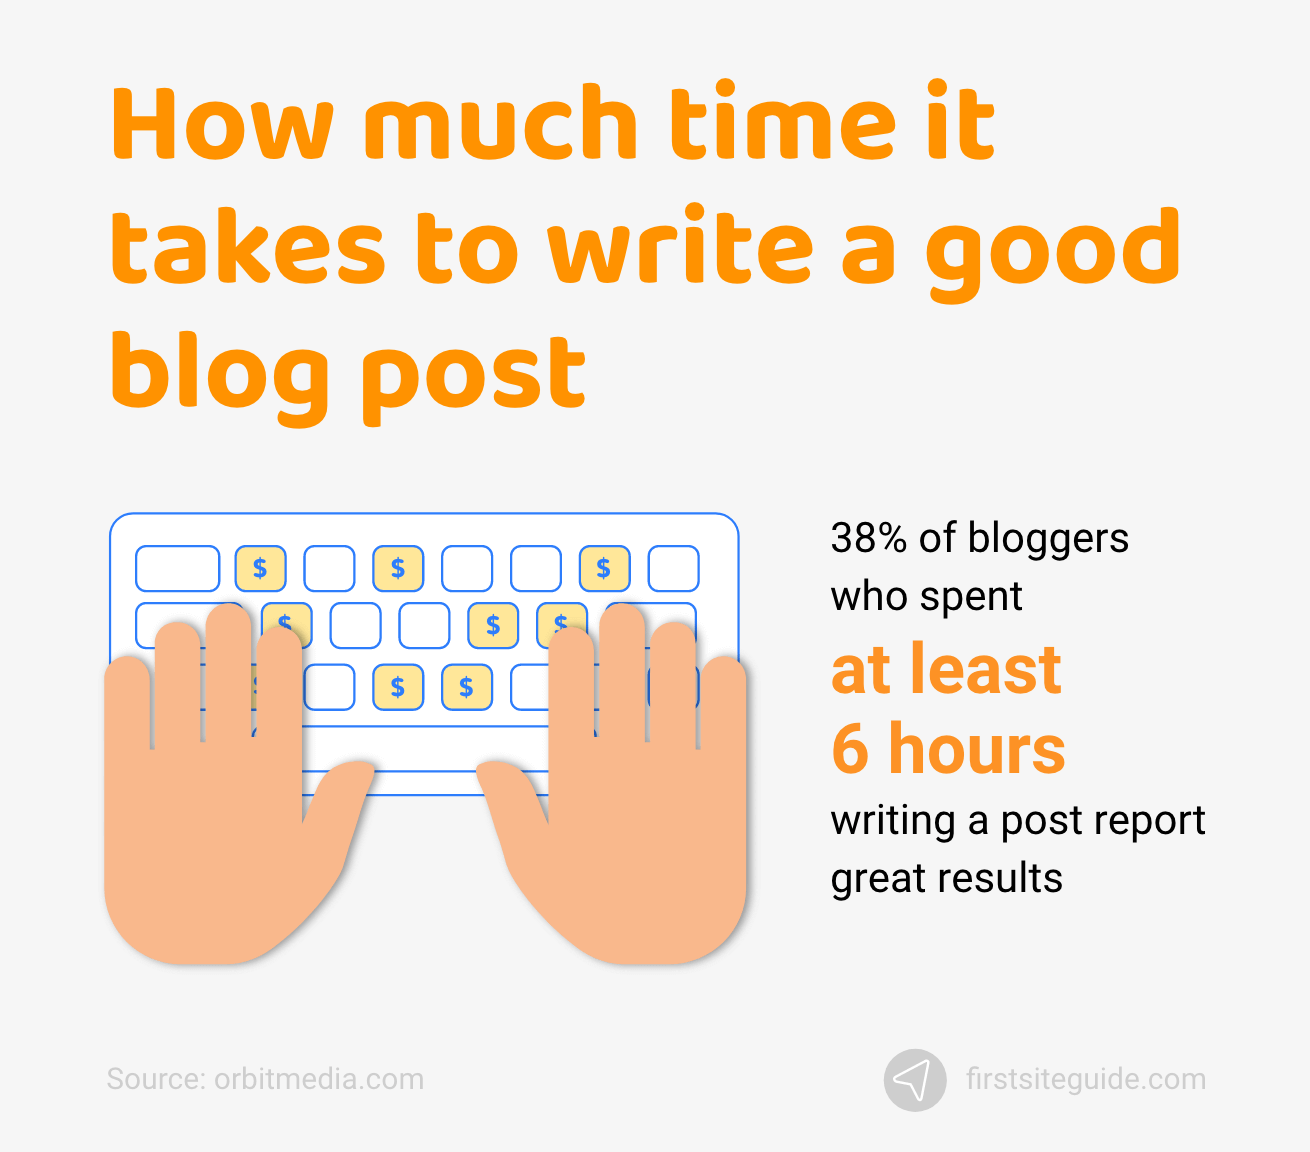 How much time it takes to write a good blog post